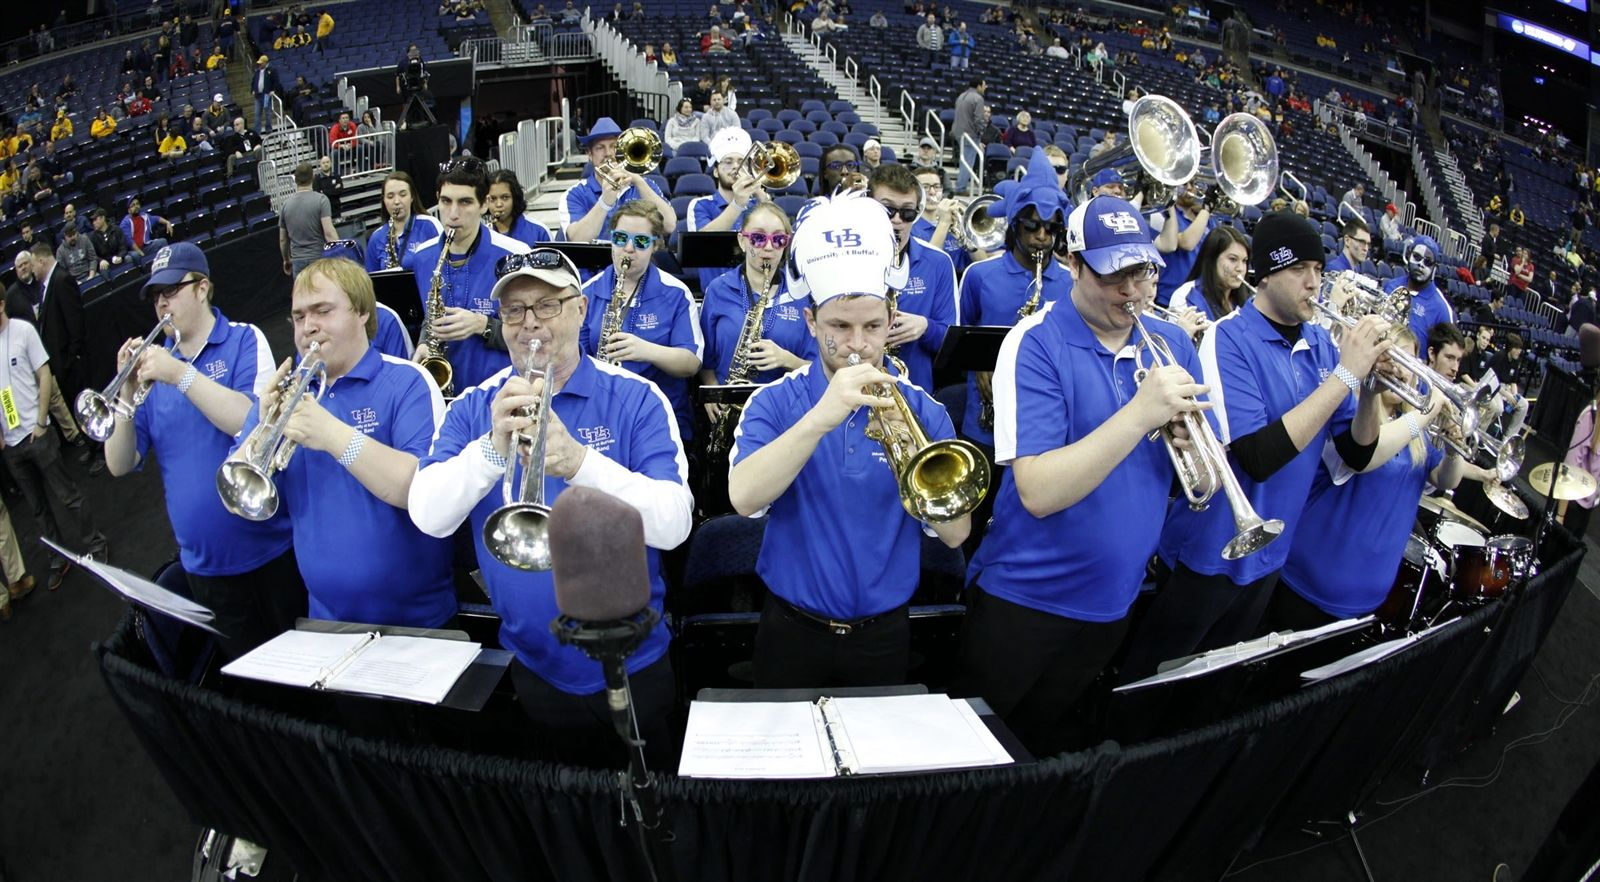 The University at Buffalo band performs during warm-ups before the Bulls play West Virginia in the NCAA Tournament men's basketball game at Nationwide Arena in Columbus.